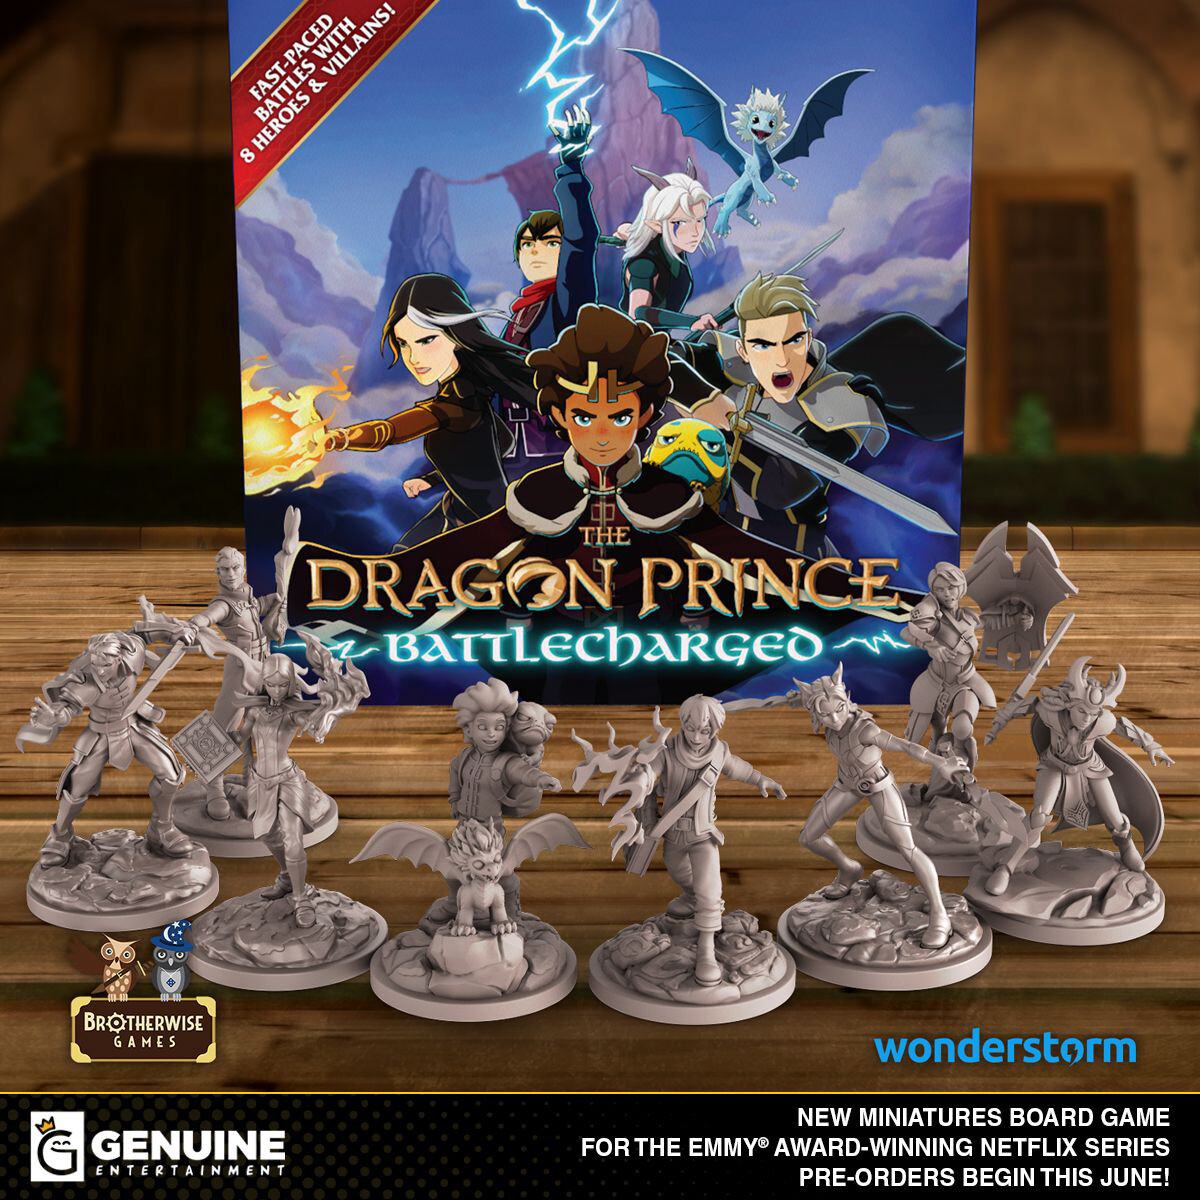 If you'd like to learn more about the game and want to purchase it, check the link below! https://www.brotherwisegames.com/thedragonprince